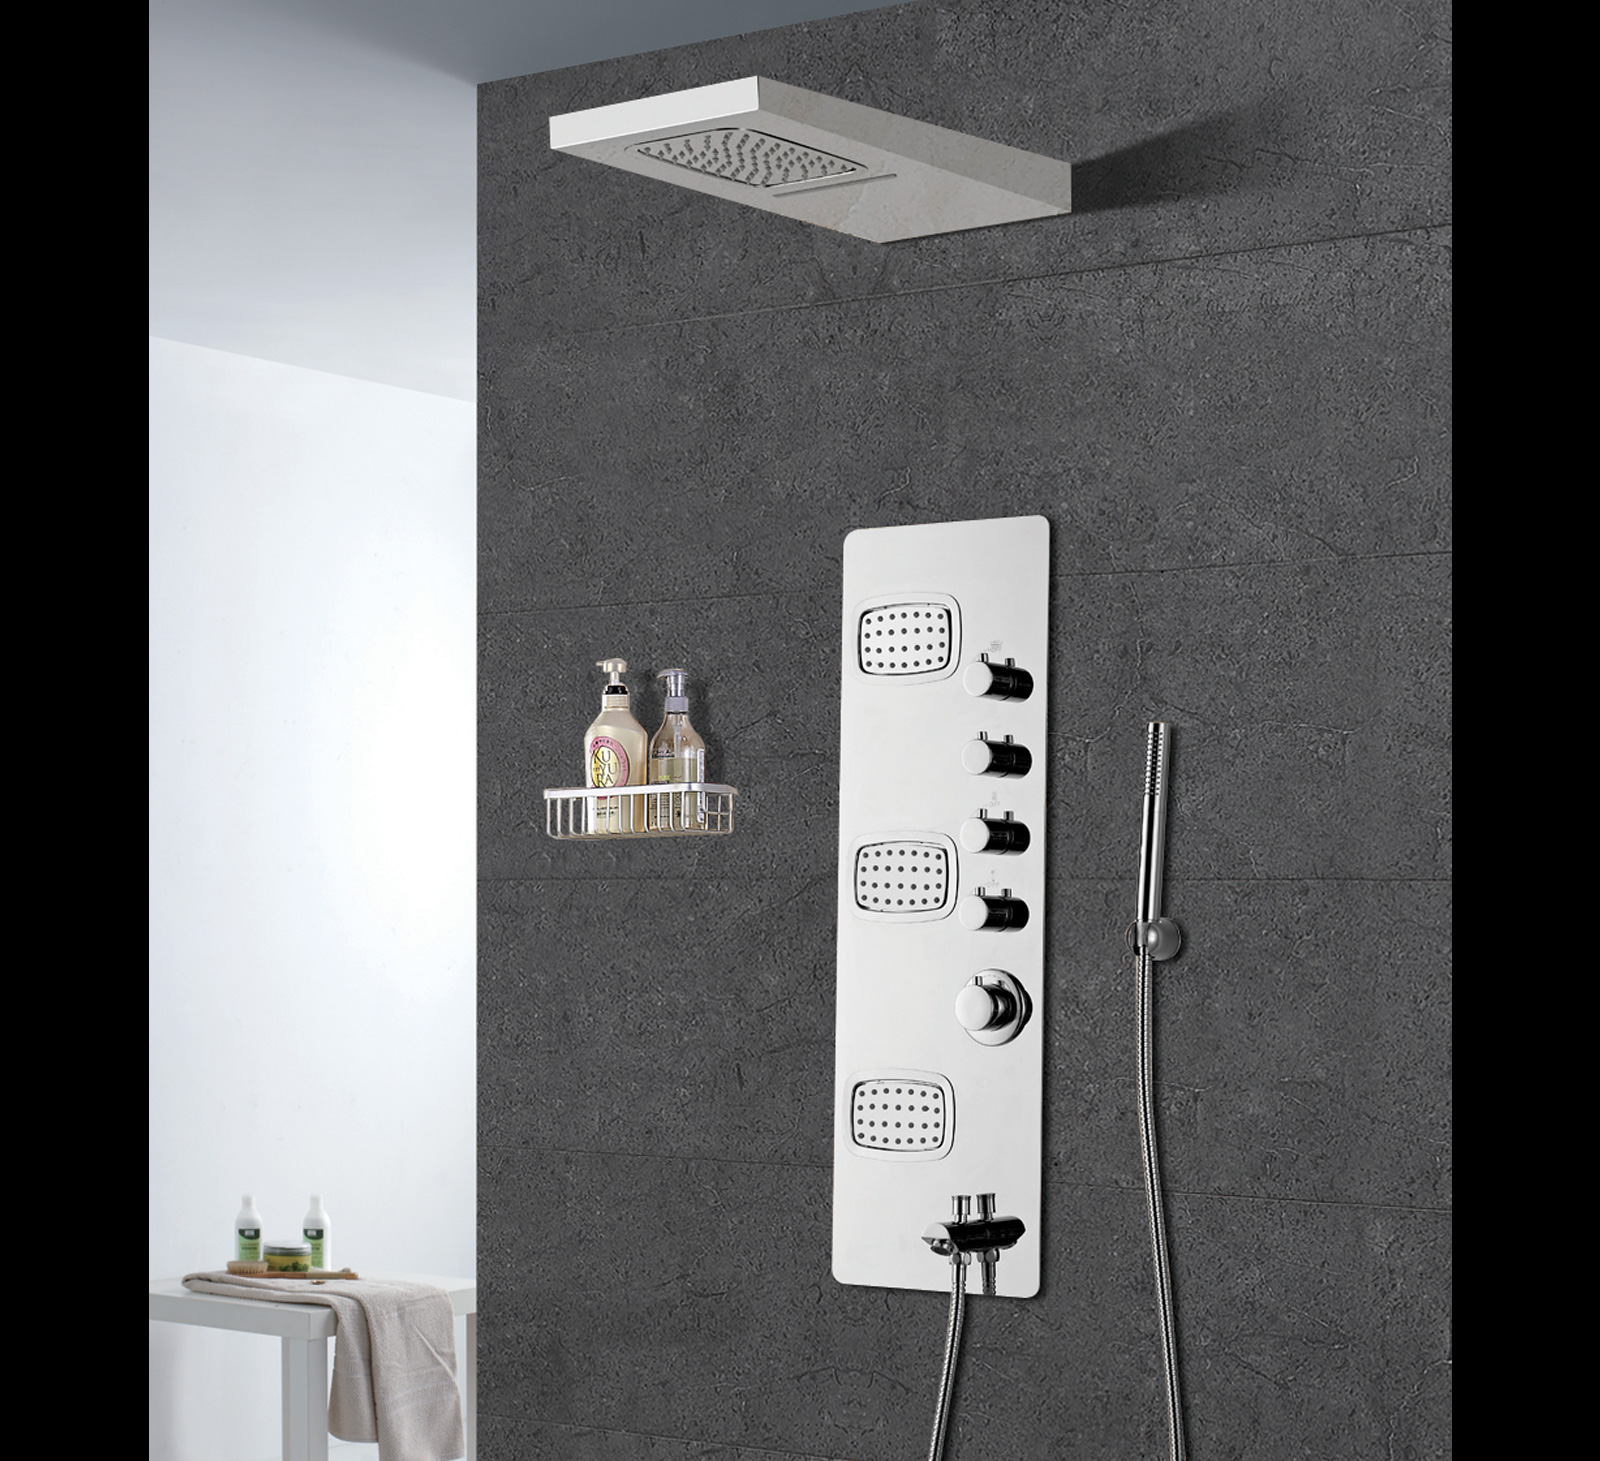 Studio-Concept Wall Shower